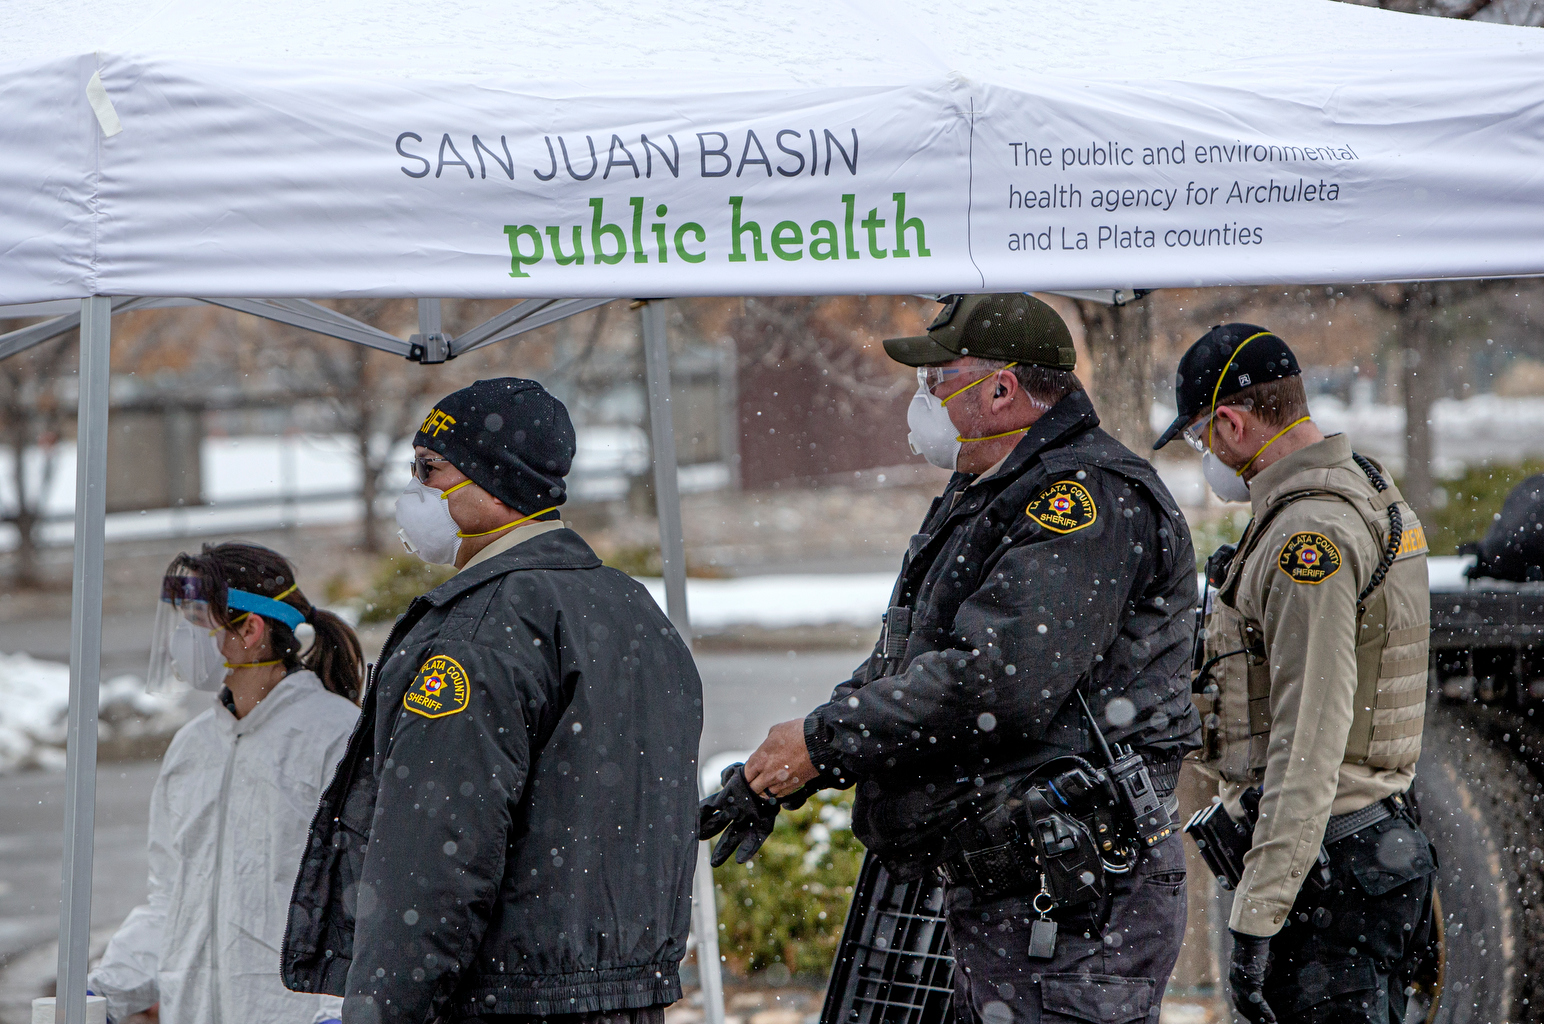 La Plata County sheriff deputies and medical personnel get ready to open a drive through coronavirus testing facility at the La Plata County fairgrounds on March 20, 2020. The facility, put on by San Juan Basin Public Health, will test 100 people for the virus.